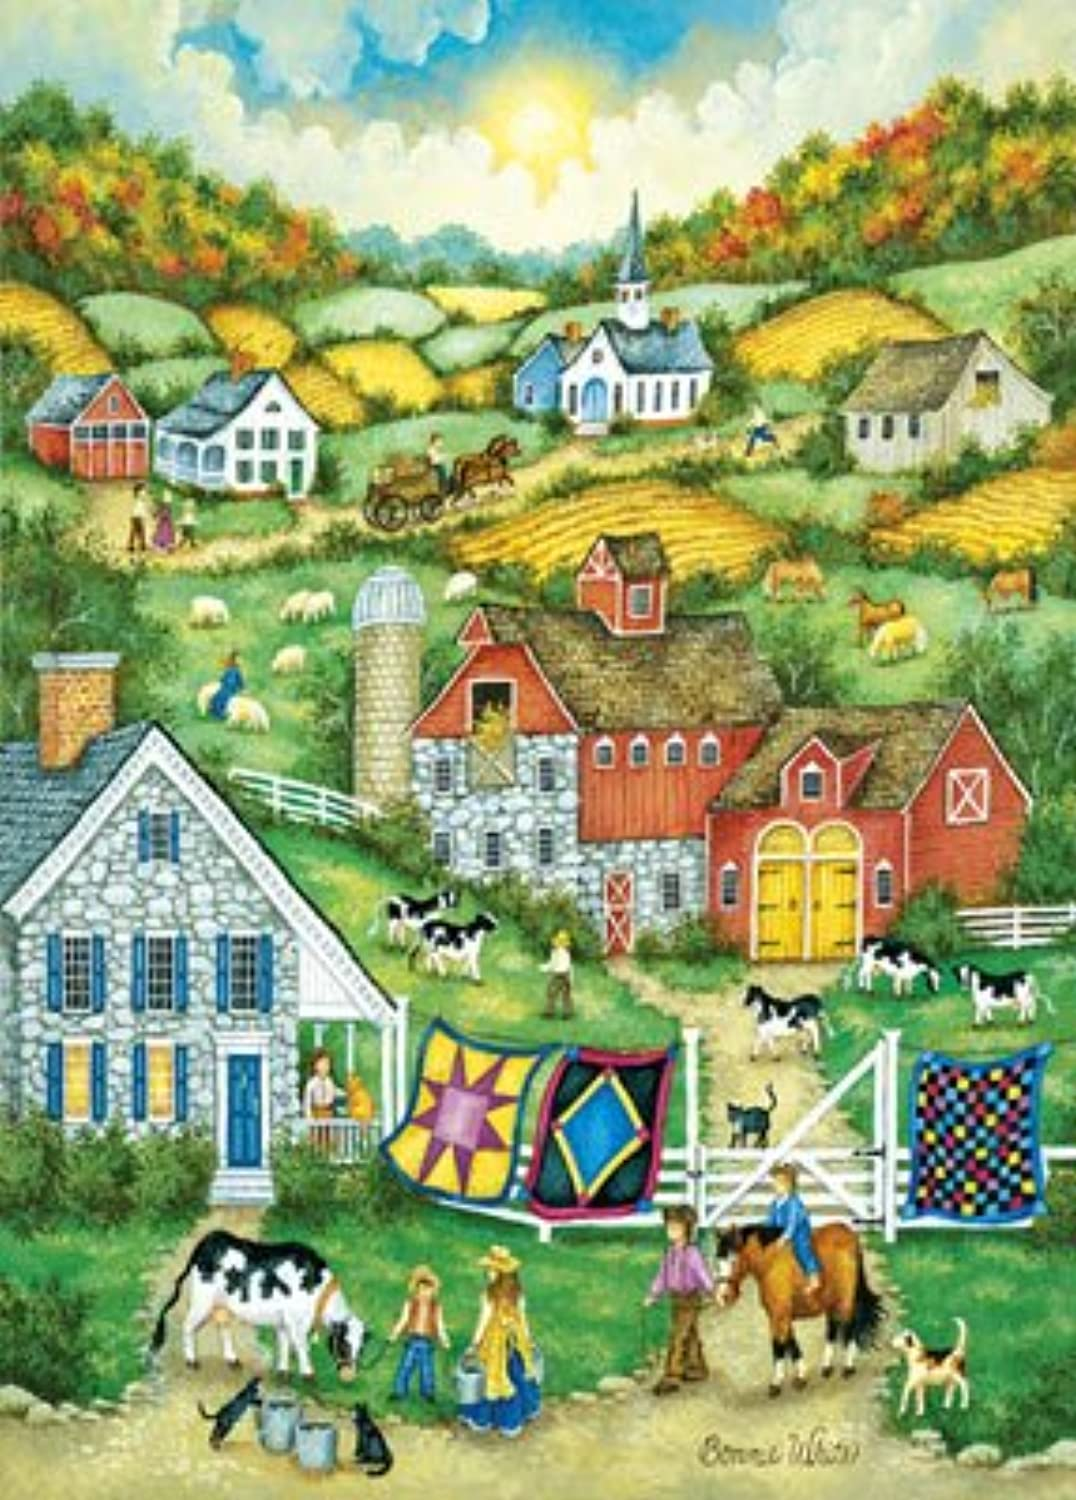 Jigsaw Puzzle Collectible Tin 1000 Pieces 11.5 X16.5 -World's Smallest-colors Of Fall